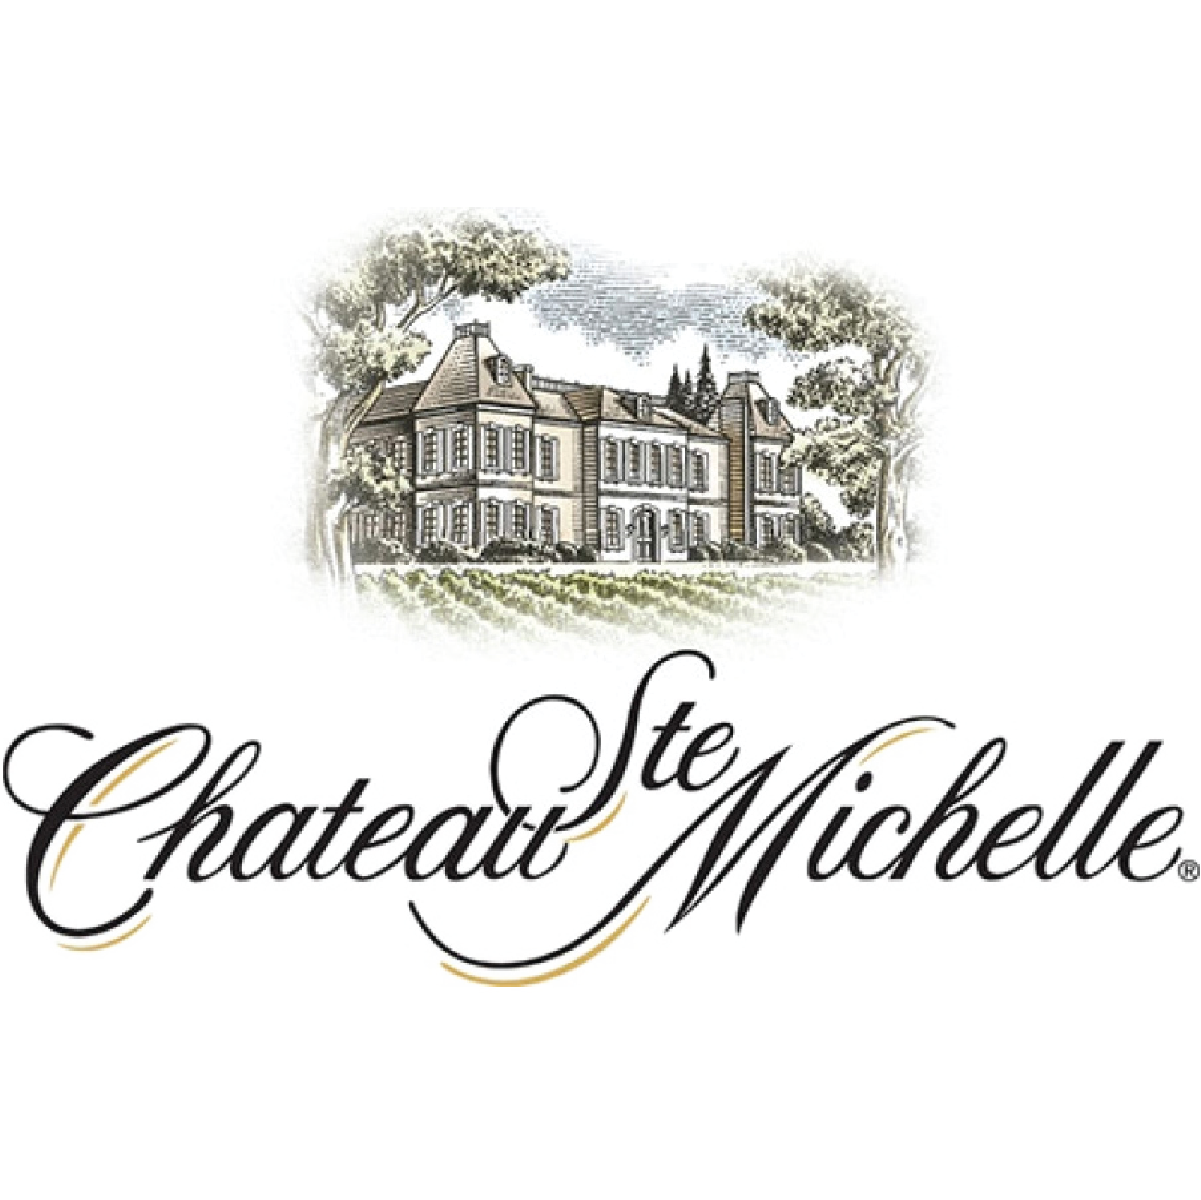 staciewebsite-logo_Chateau Ste Michelle.png